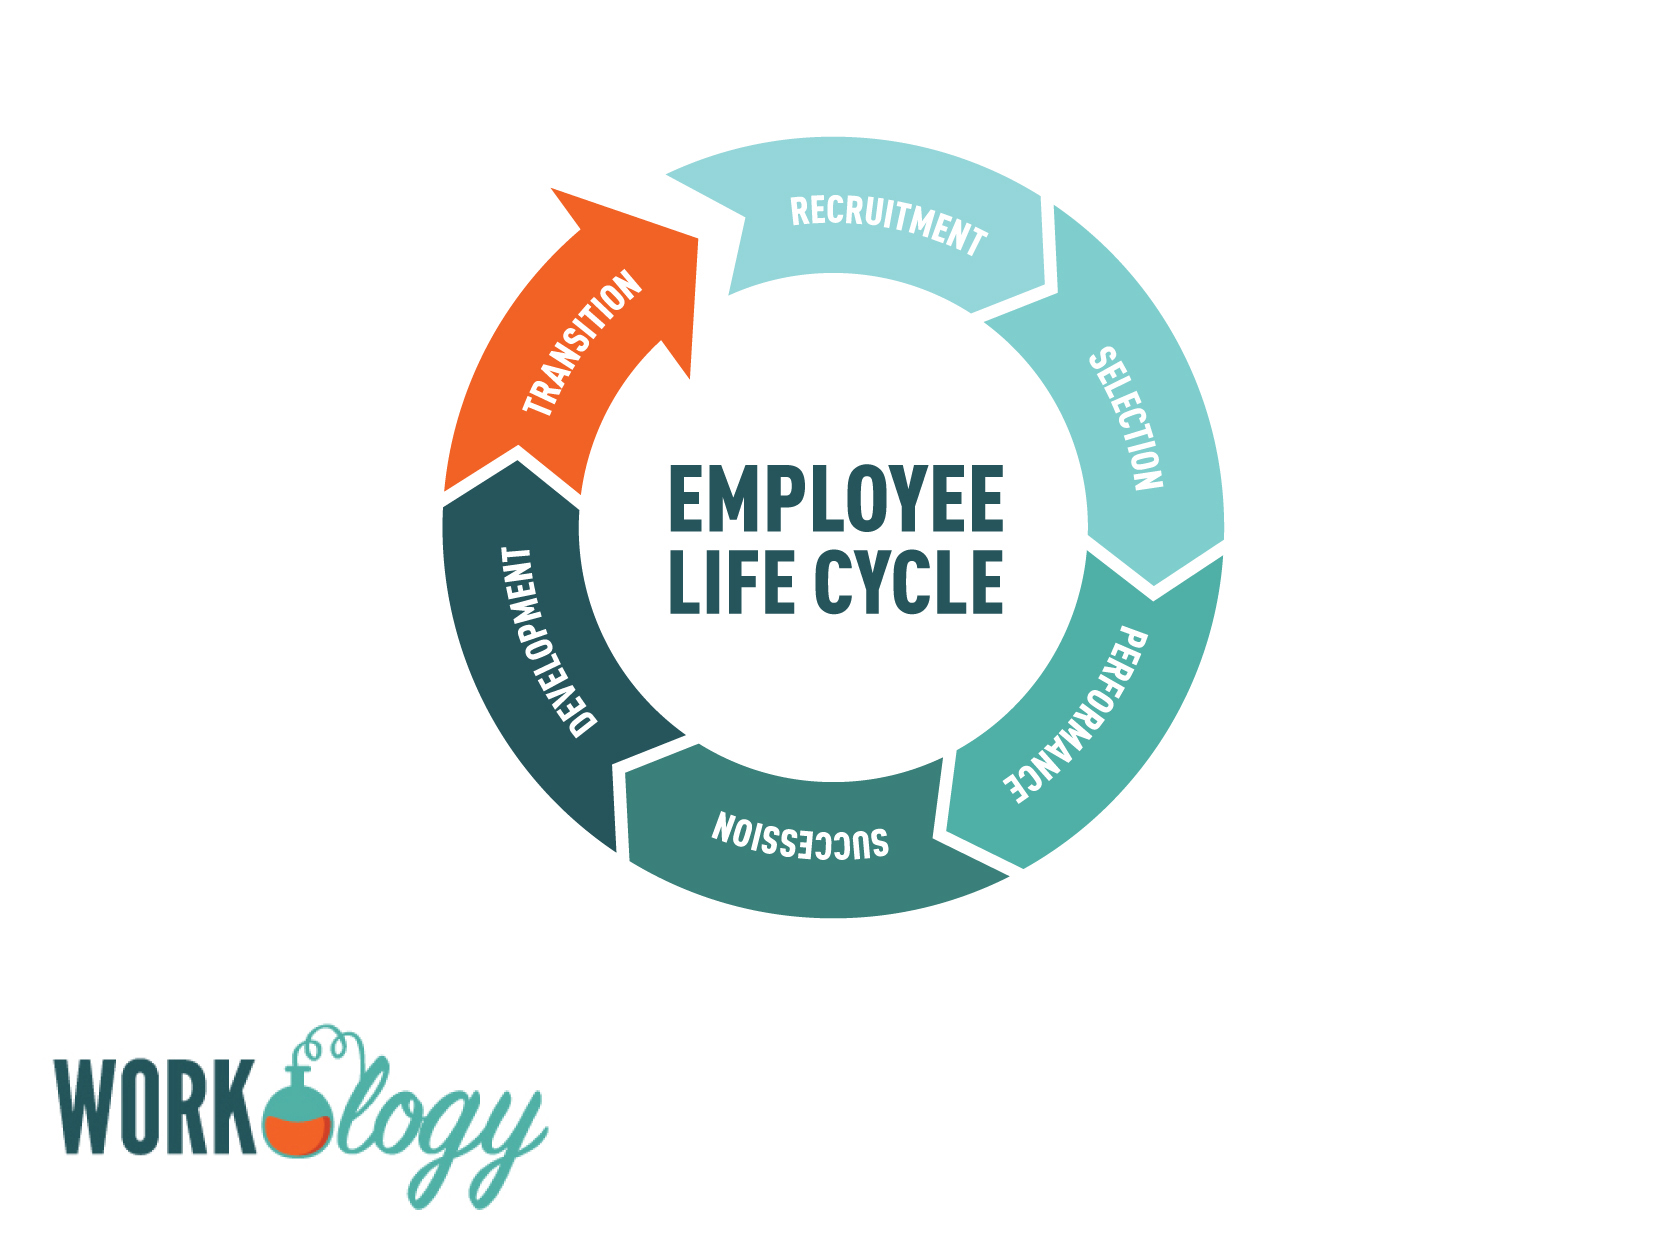 employee life cycle diagram craftsman air compressor parts why internet sourcing isnt your recruiting savior workology